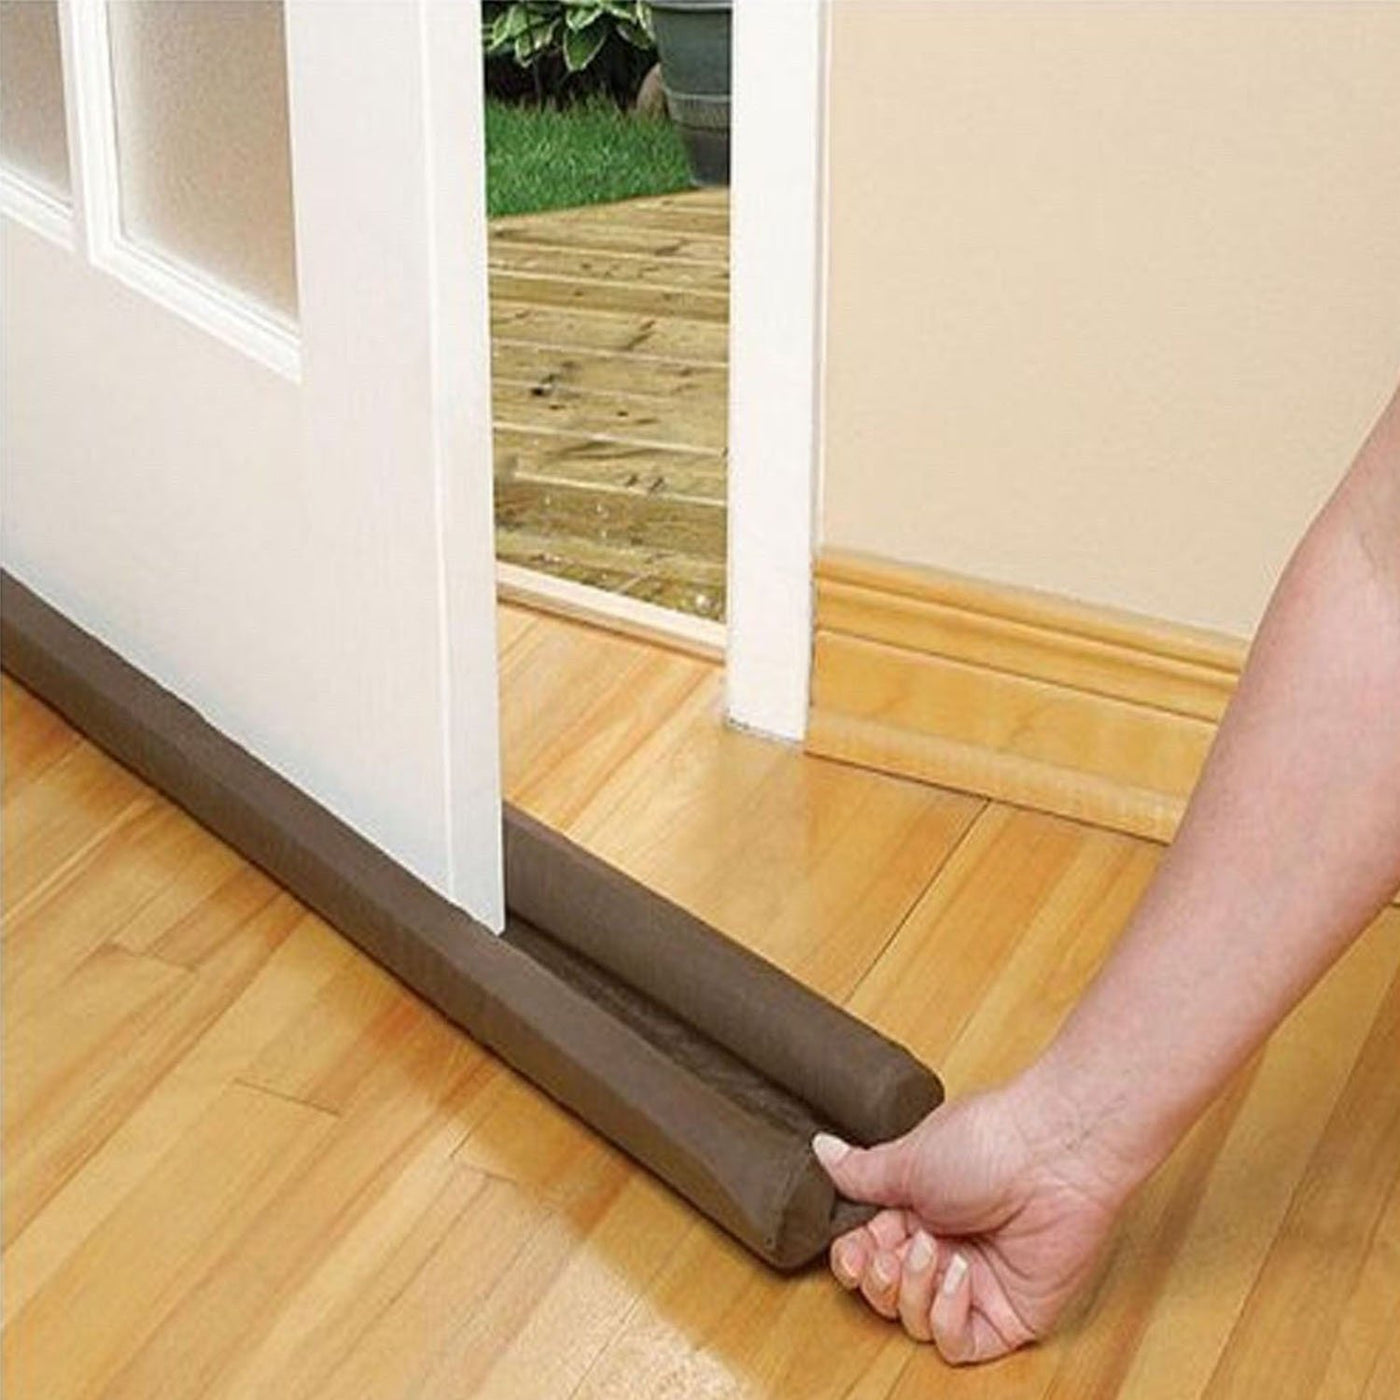 The Door Draft Stopper   Energy Saver And Sound Blocker   Hooked On Saving  ...